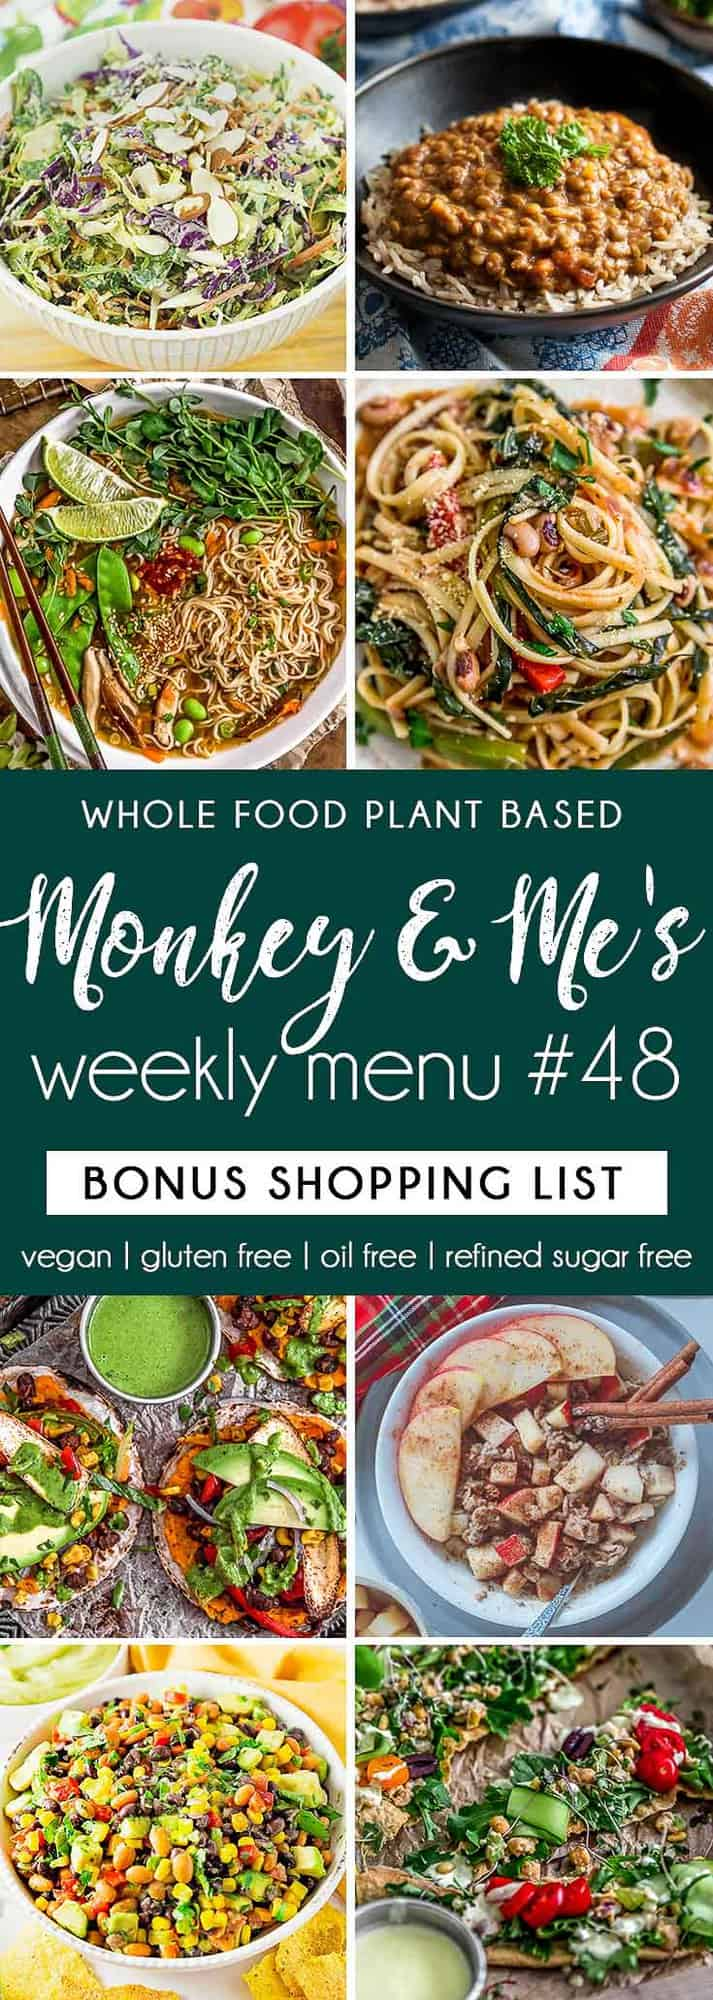 Monkey and Me's Menu 48 featuring 8 recipes